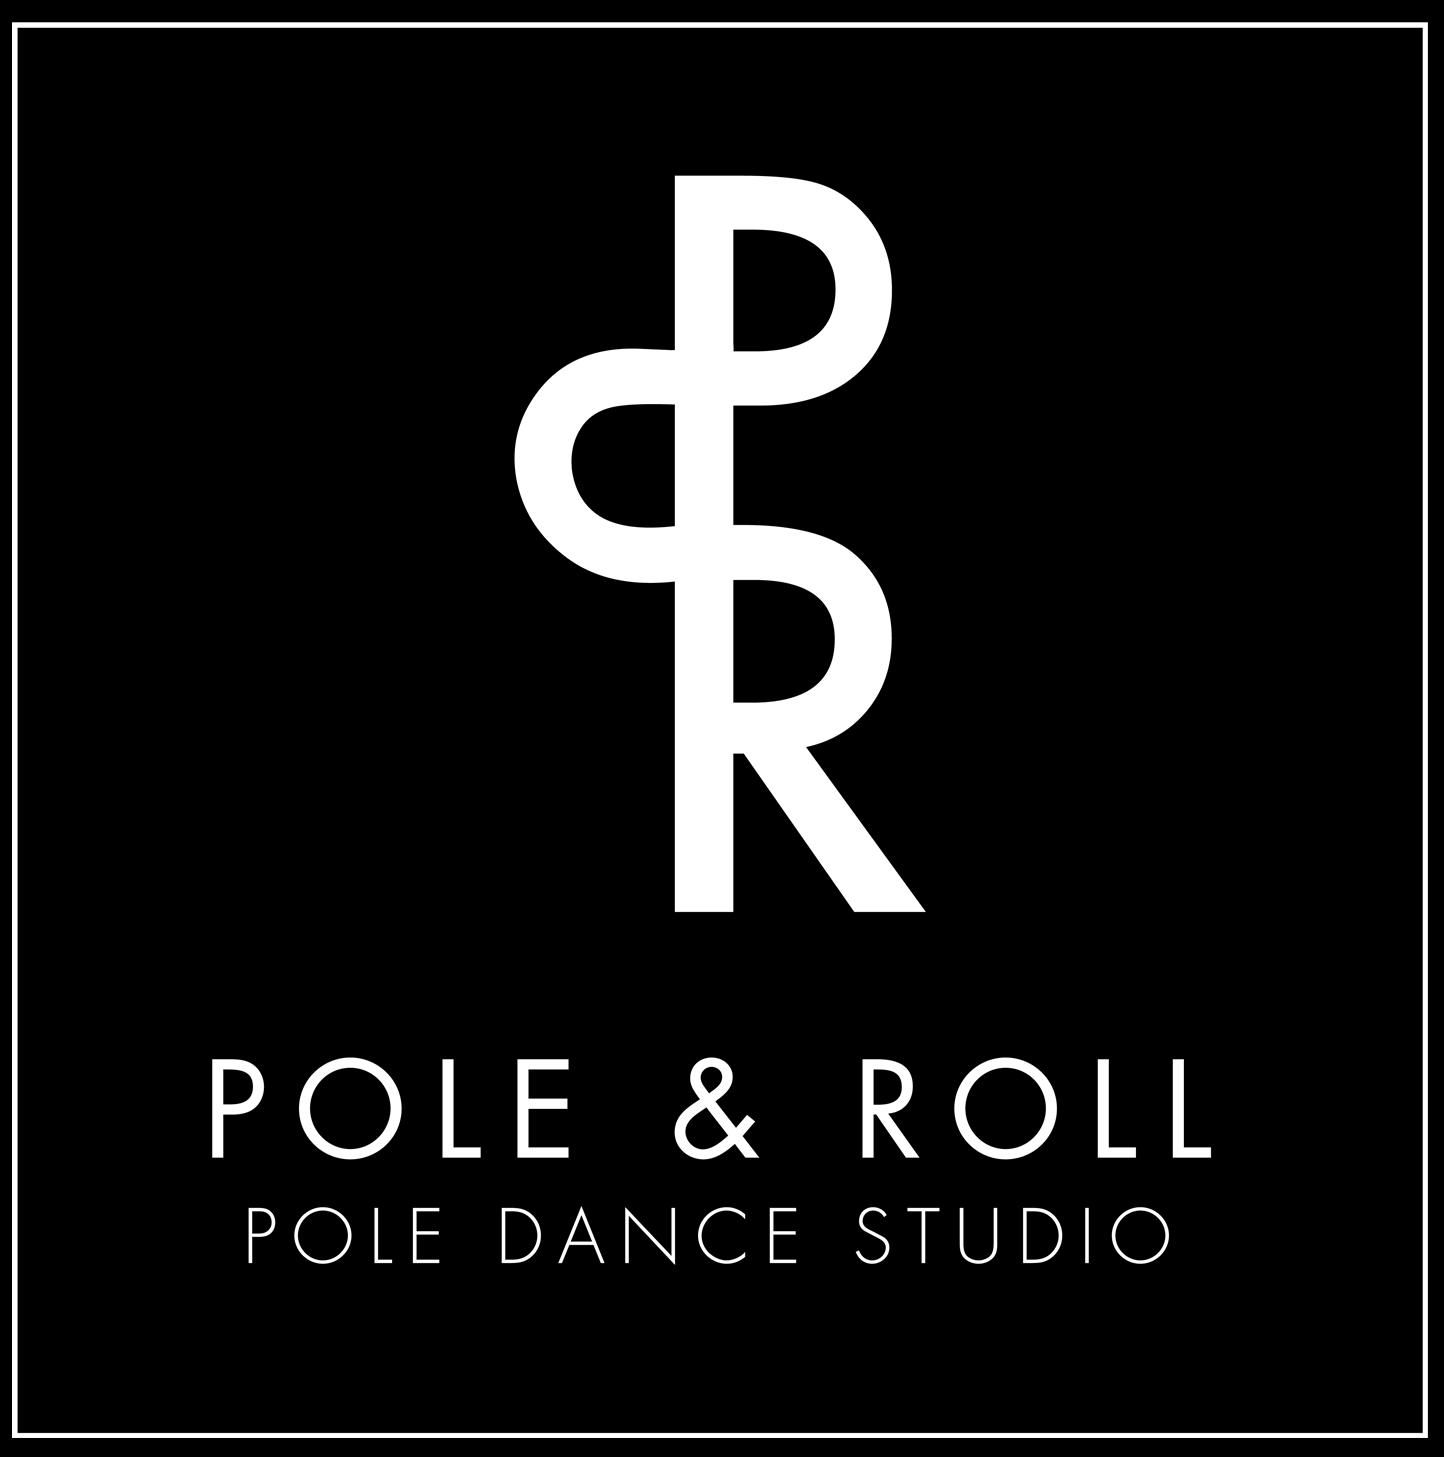 Pole & Roll Stalowa Wola - Pole Dance Studio